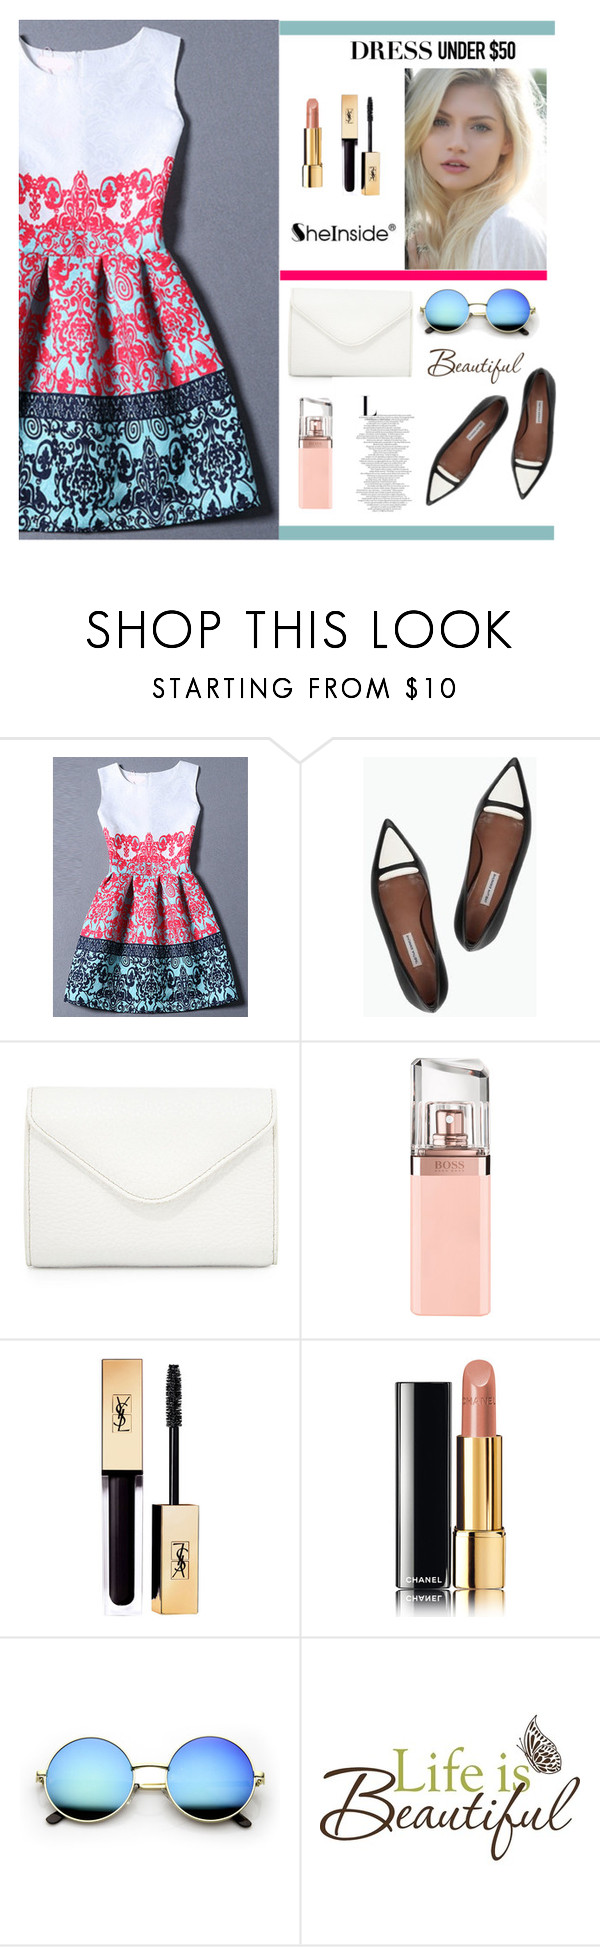 """""""Untitled #644"""" by veronica7777 ❤ liked on Polyvore featuring Rachel Comey, Neiman Marcus, HUGO, Chanel, Brewster Home Fashions and Dressunder50"""